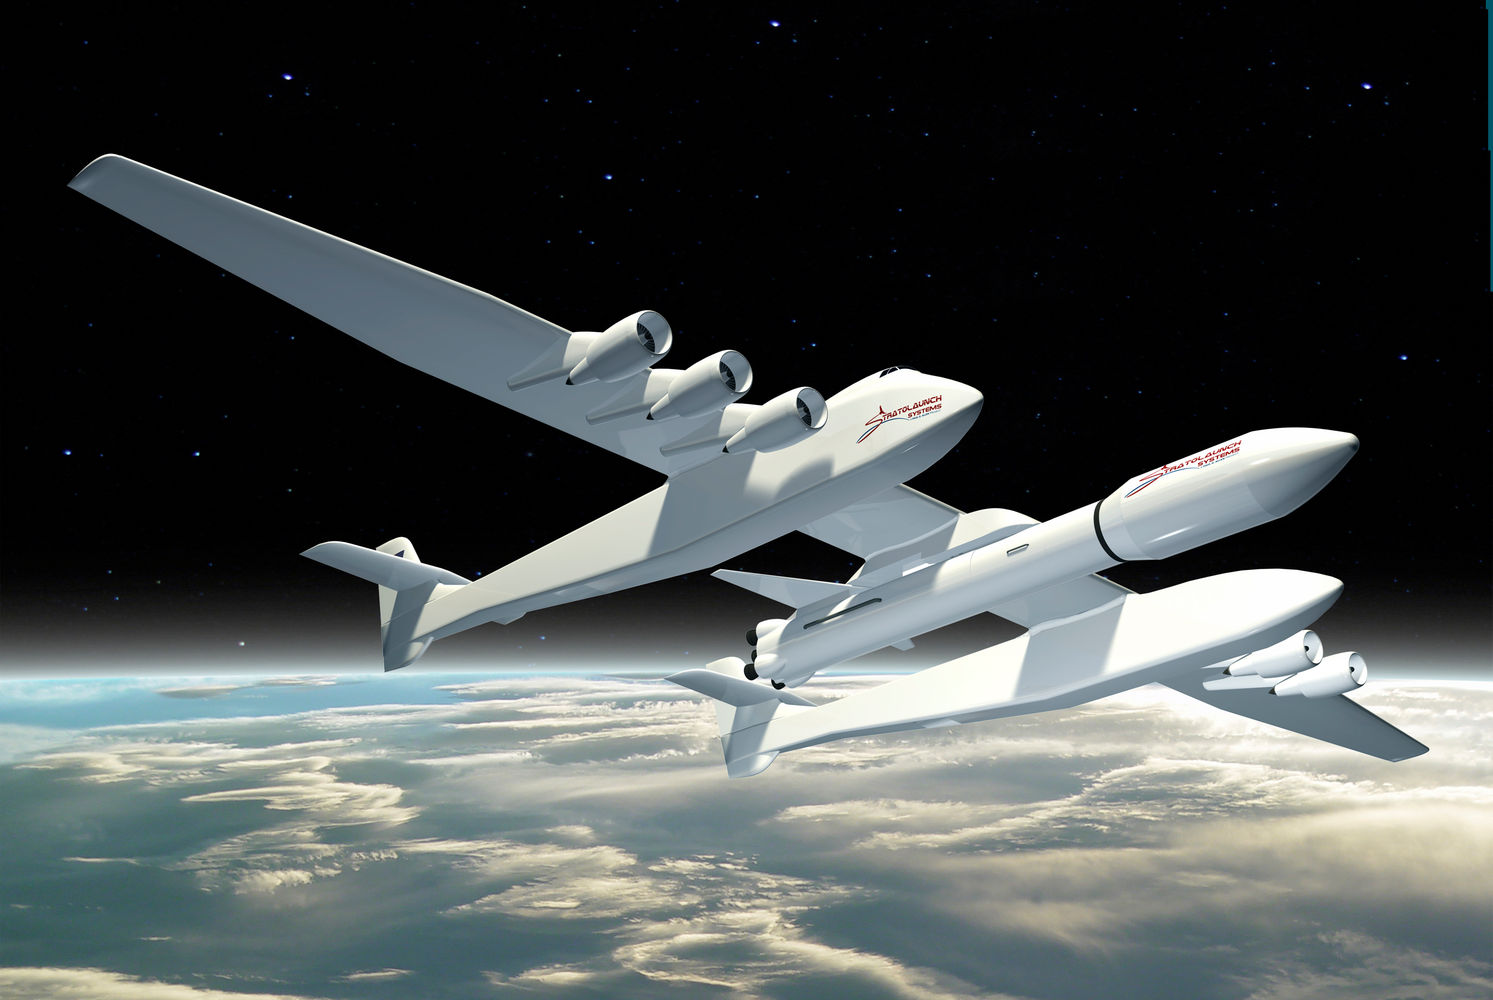 Літак Stratolaunch. Фото: Stratolaunch Systems Corp